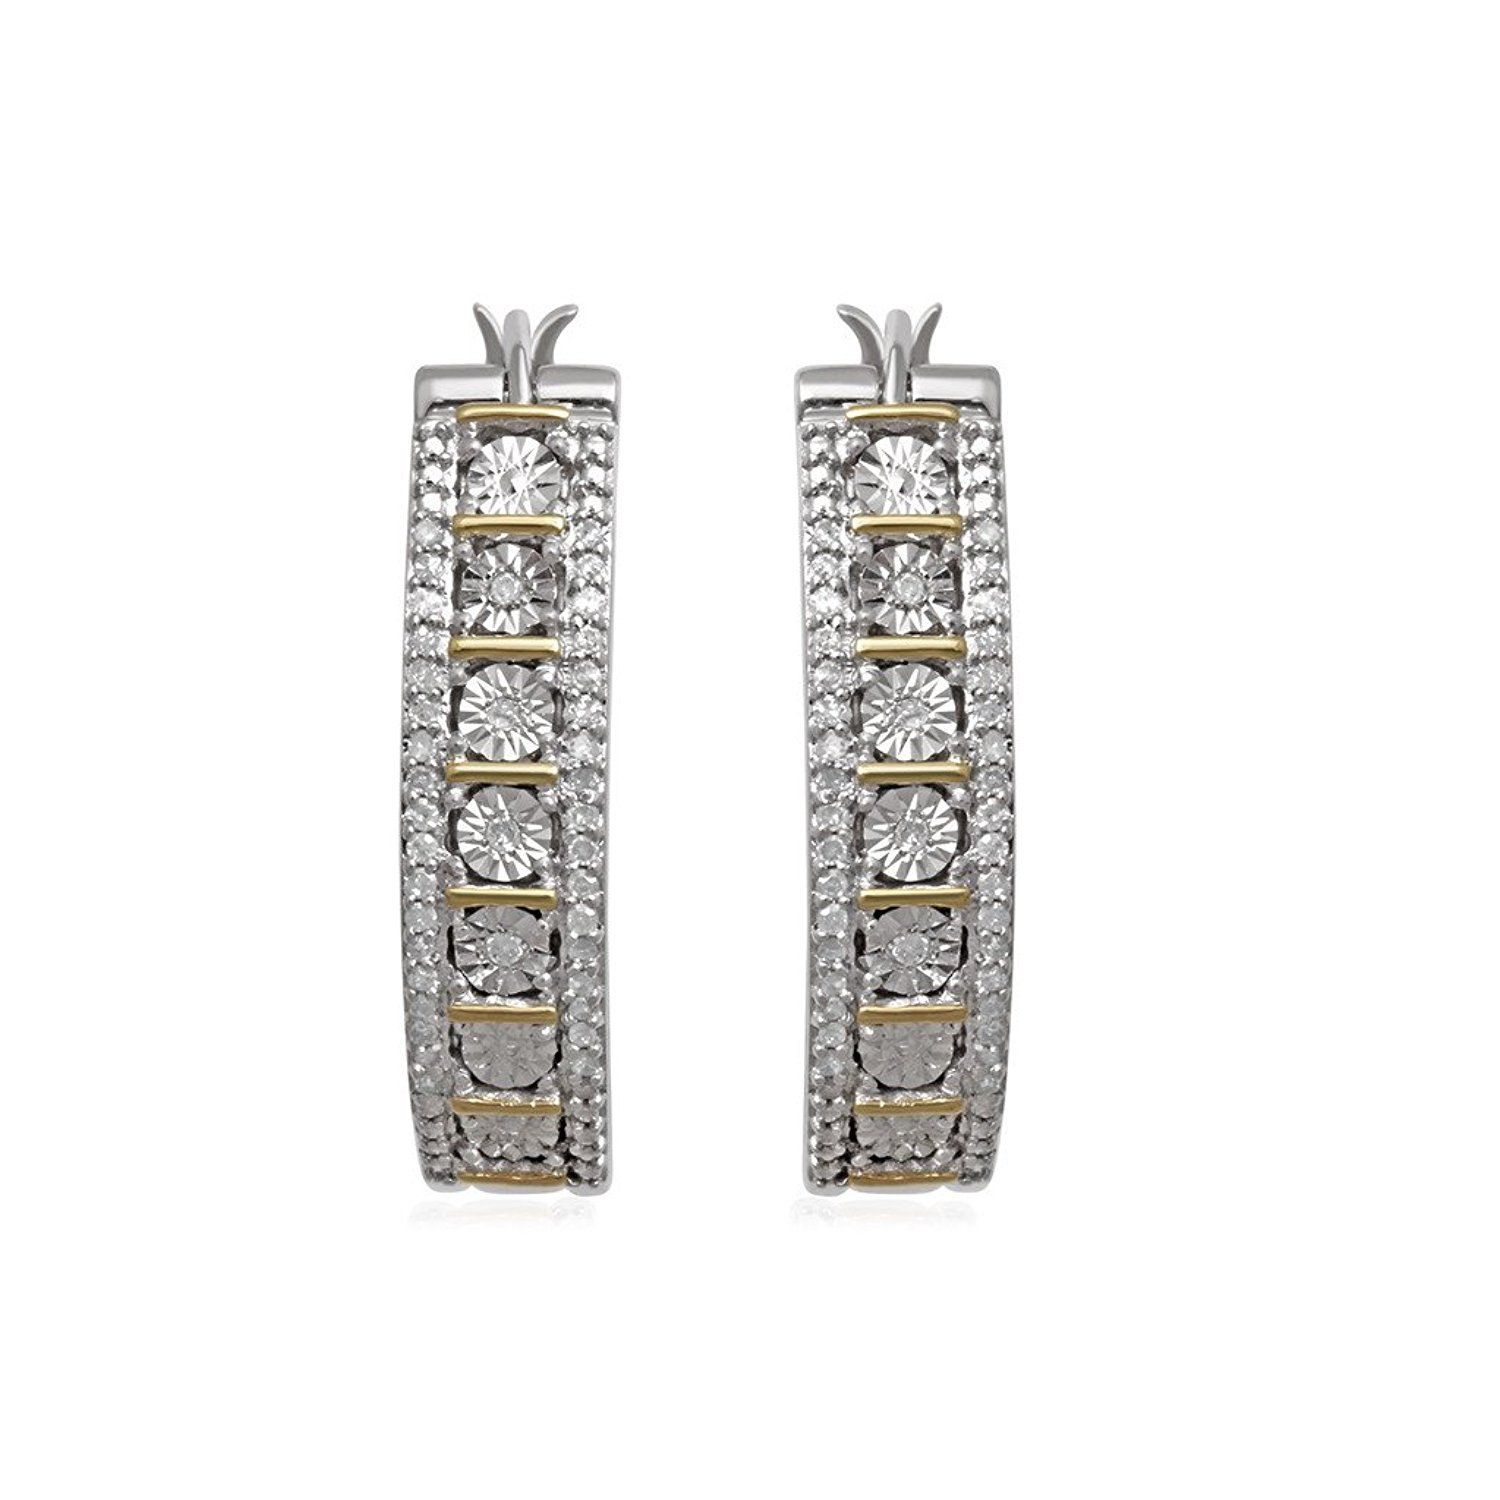 Jewelili 18K Yellow Gold Plated Over Sterling Silver Diamond Hoop Earrings,1/4cttw